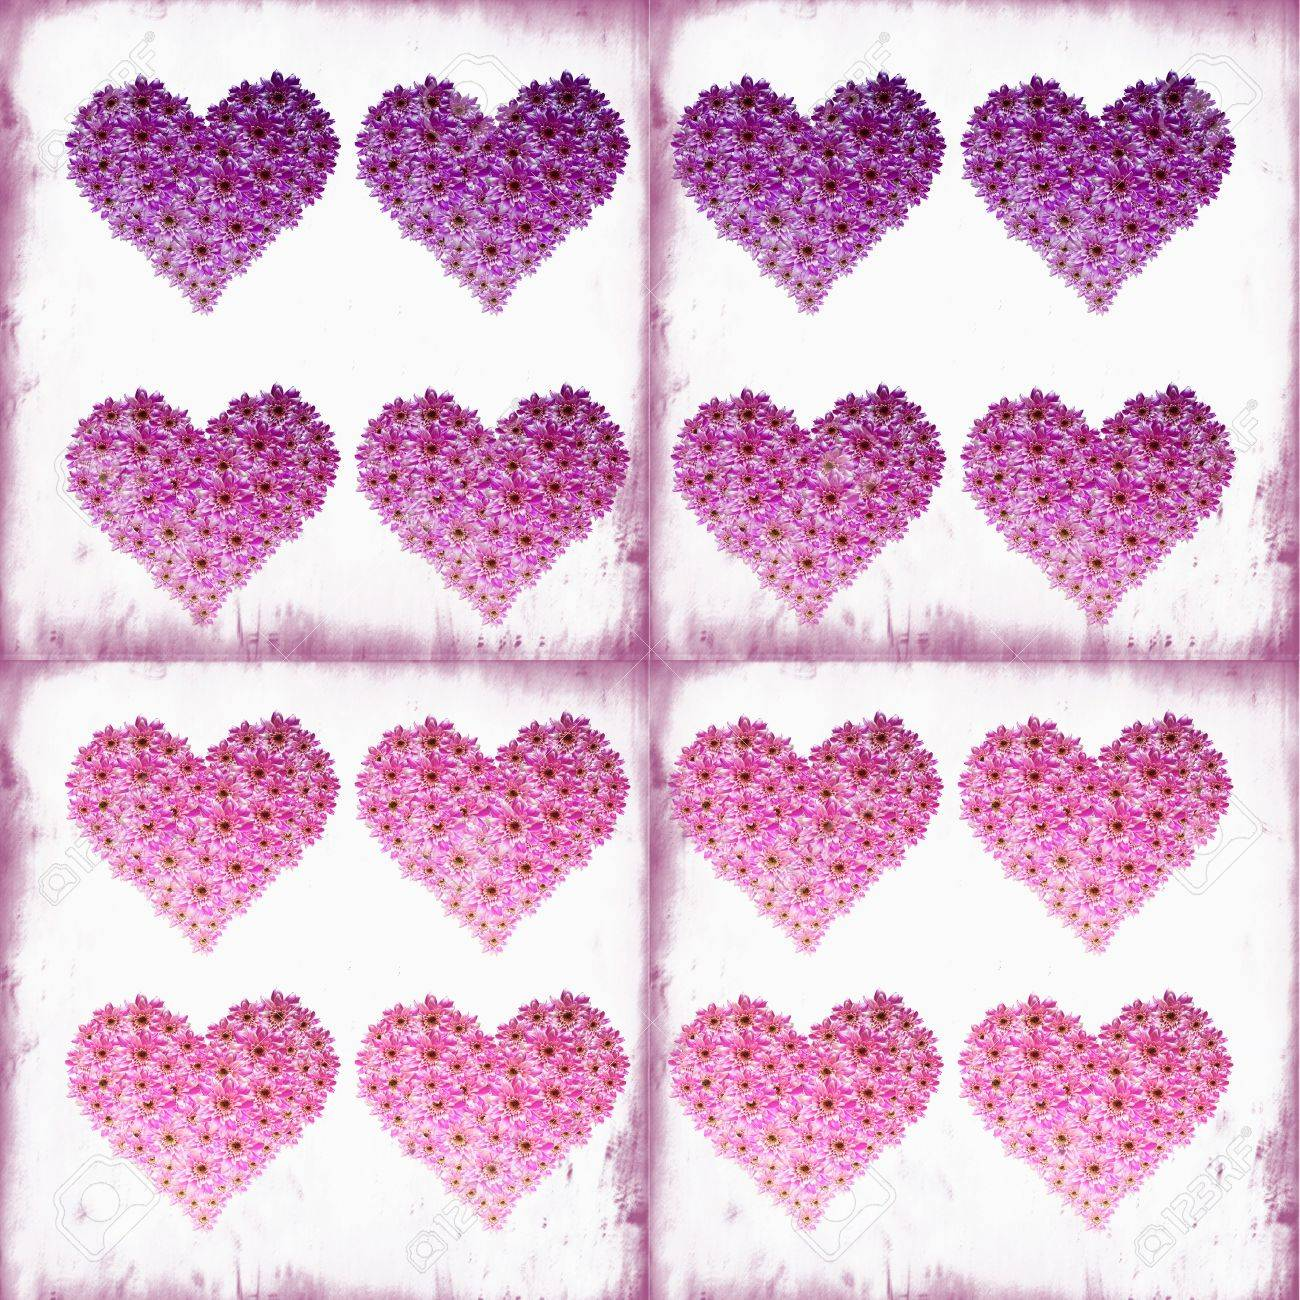 square pattern with flower hearts Stock Photo - 6534725